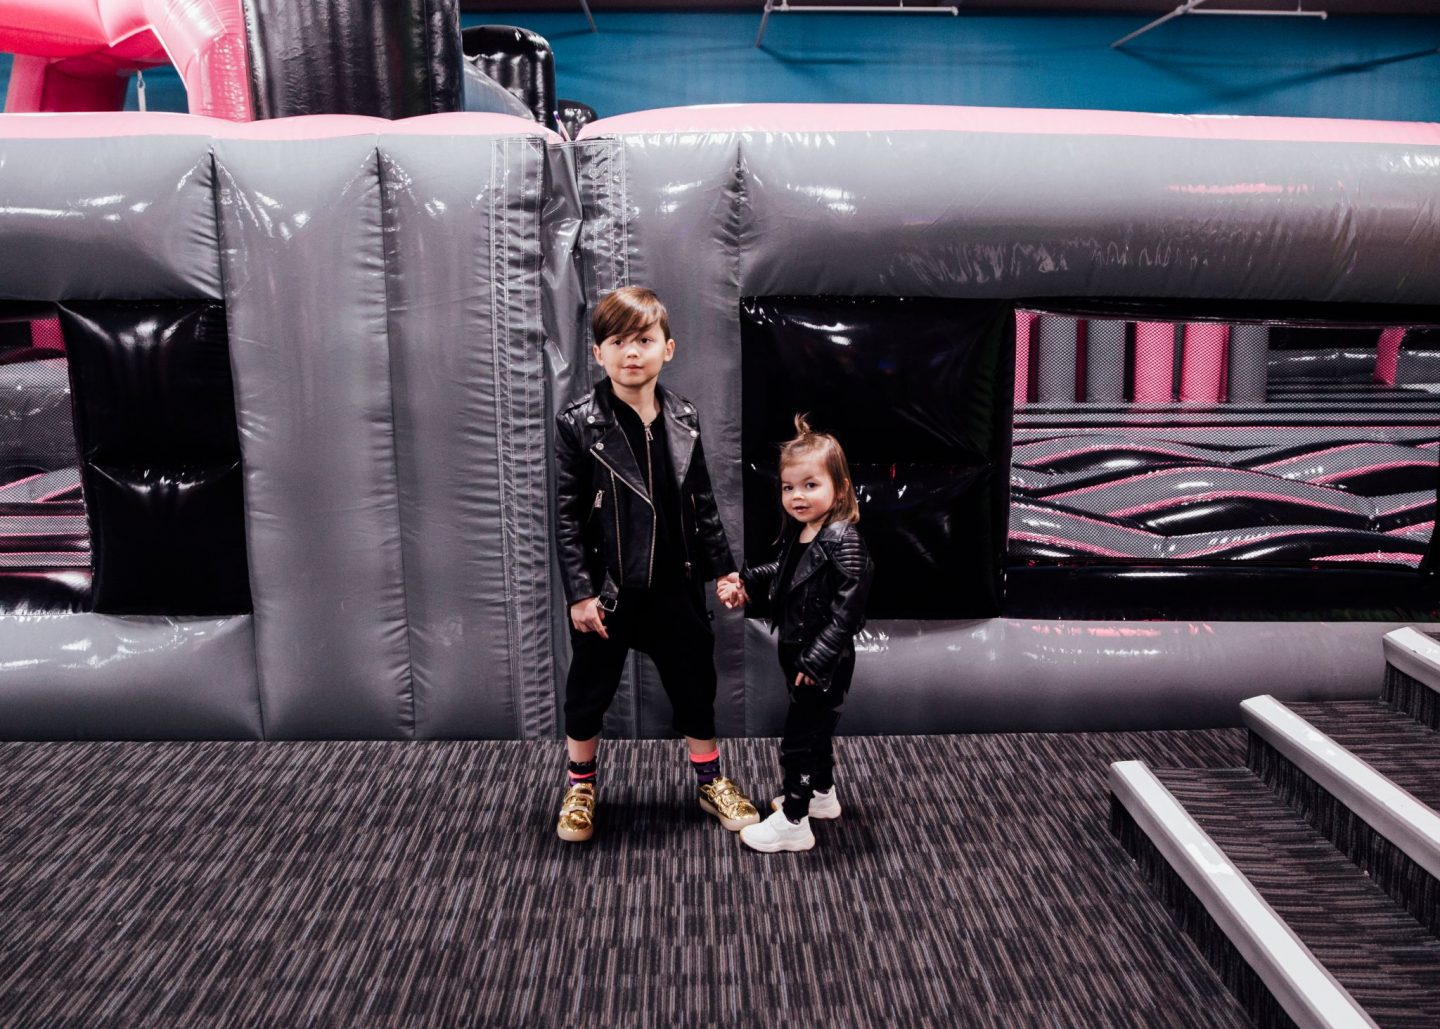 Birthday Party at the World's Largest Indoor Trampoline Park